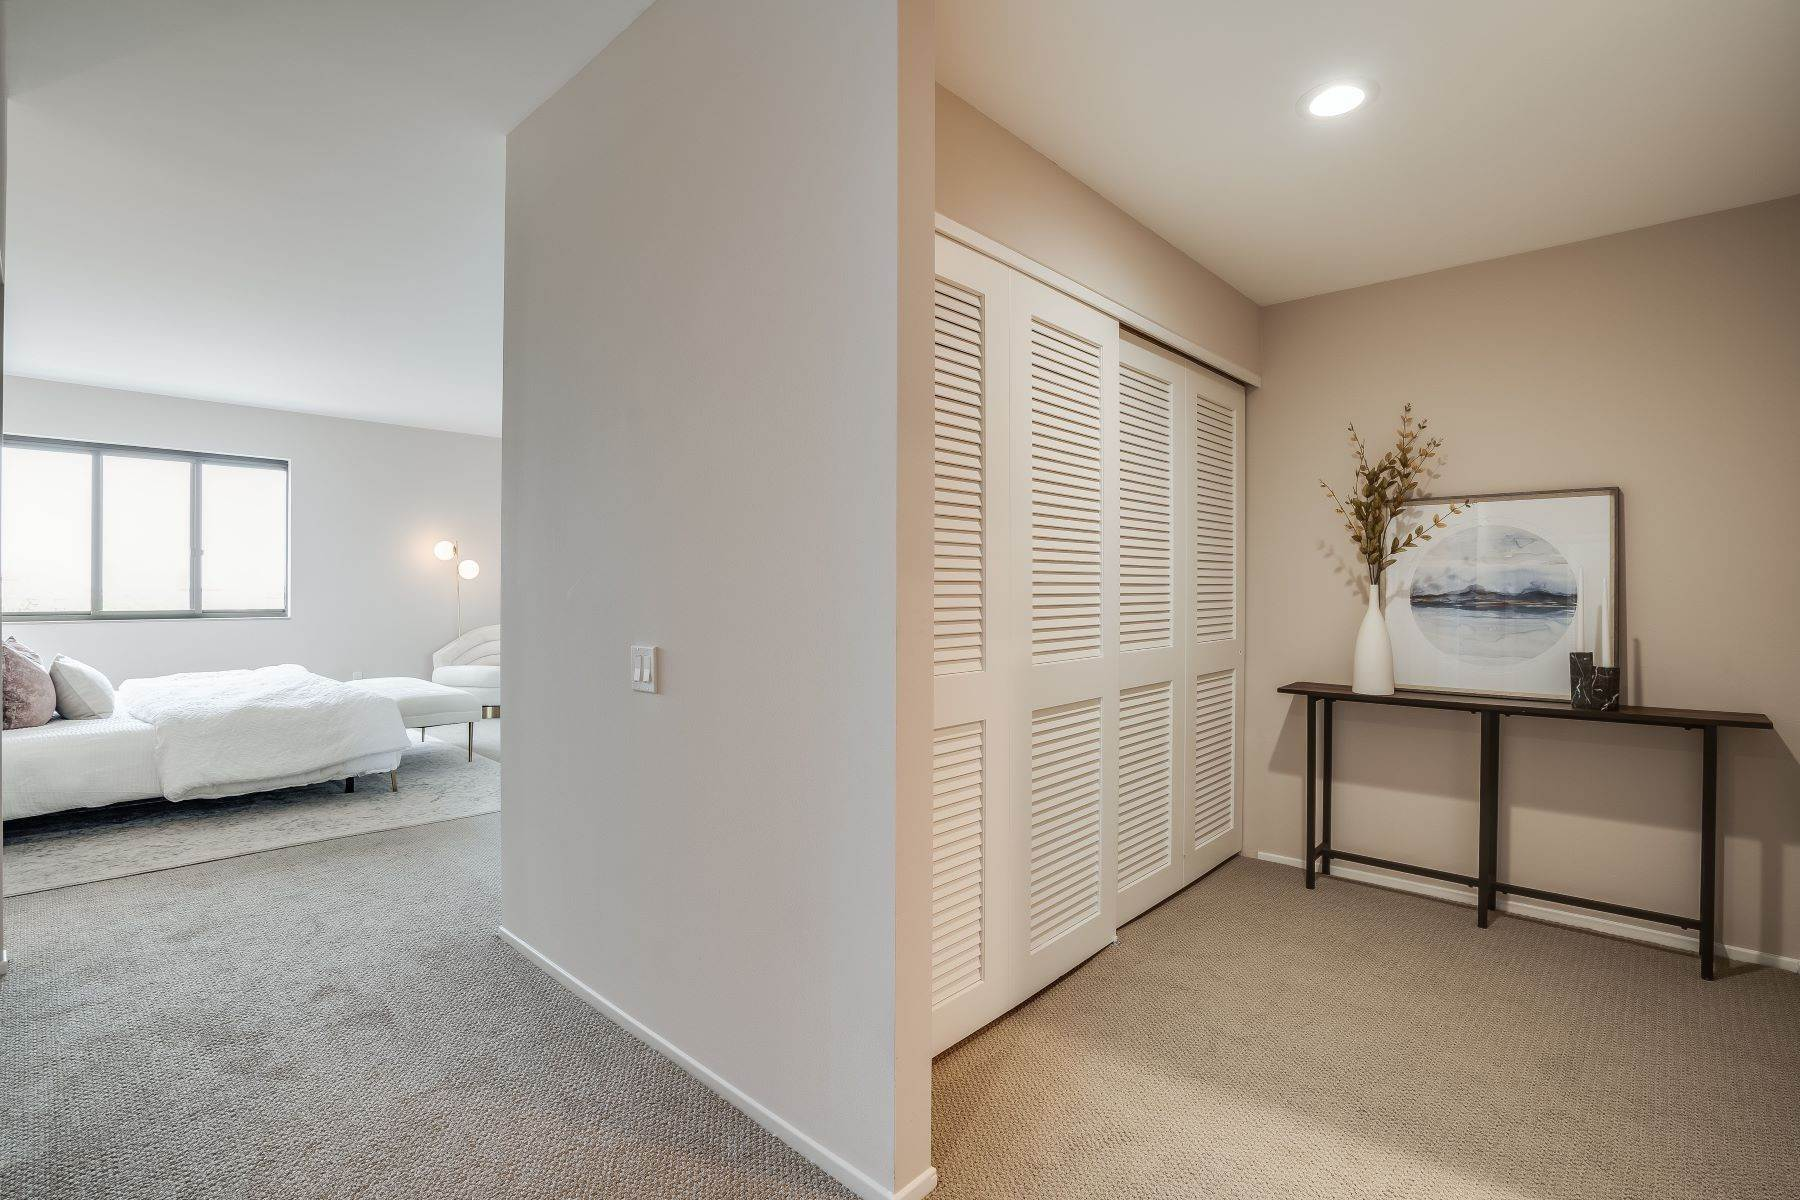 8. Condominiums for Sale at Luxury Condo in San Mateo Park! 50 Mounds Road #206 San Mateo, California 94402 United States